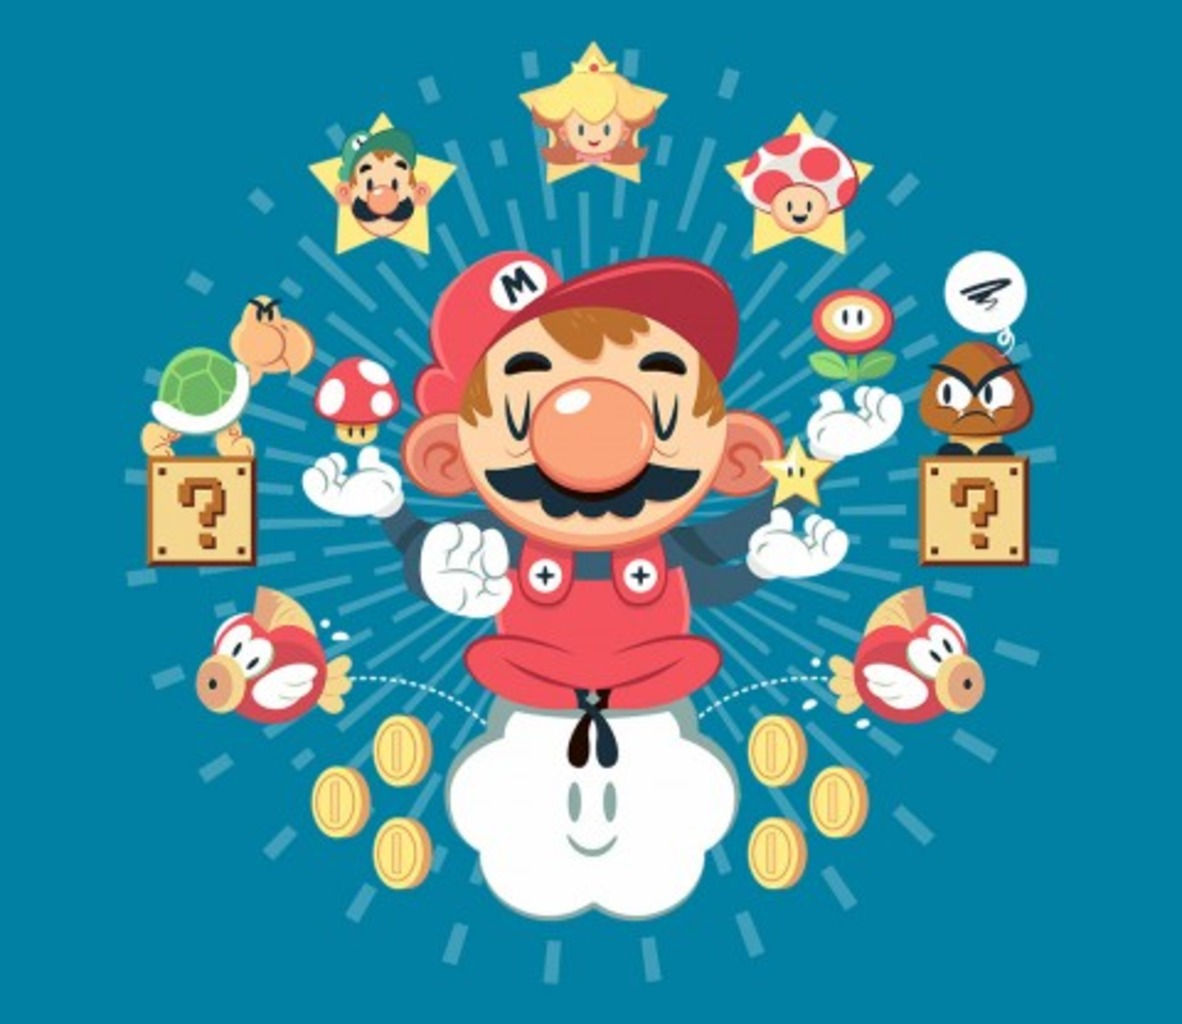 TeeFury: The One-Up